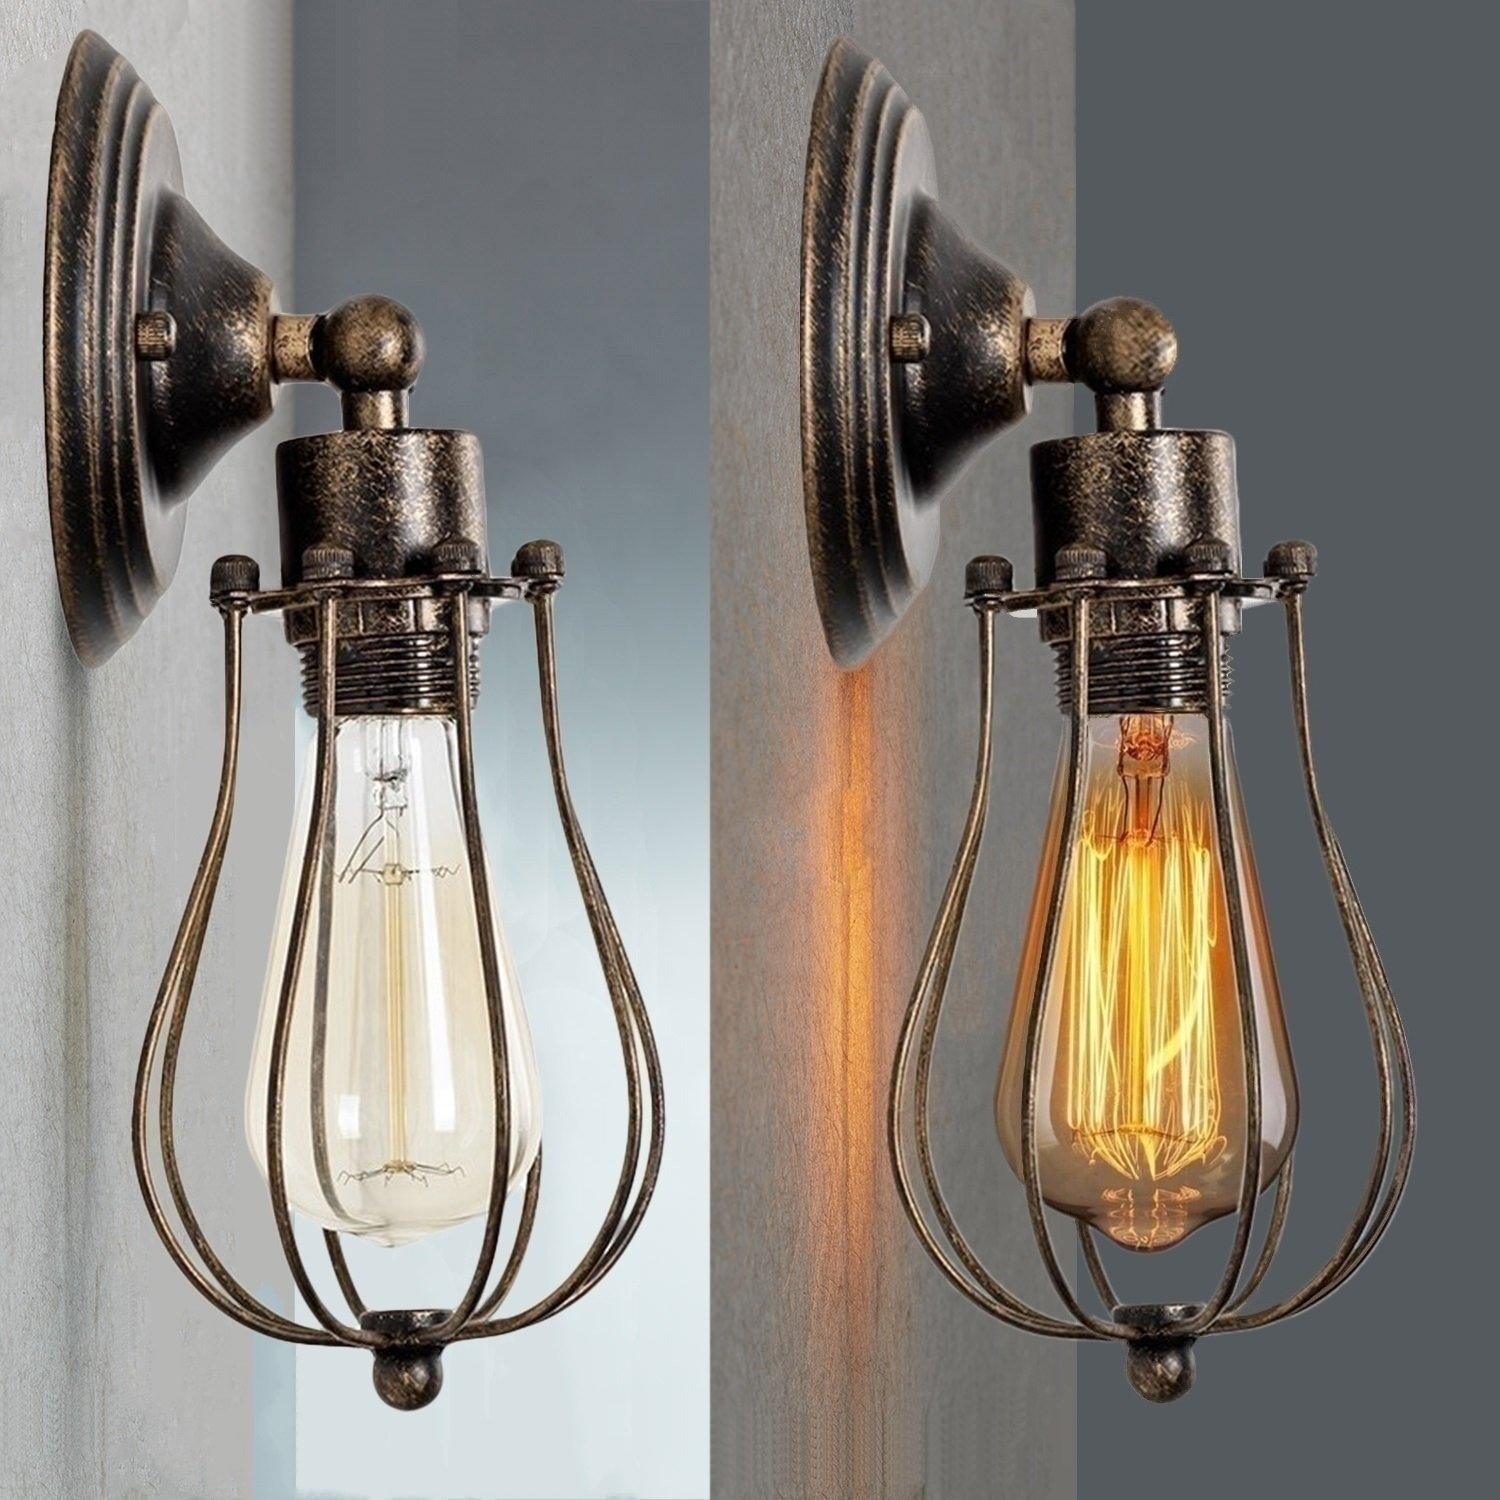 CMYK Vintage Wall Light Industrial Lighting Adjustable Socket Rustic Sconces Wire Metal Cage Wall Lamp Indoor Home Retro Lights Fixture (Single Lamp-Base Painted with Oil Rubbed Bronze)